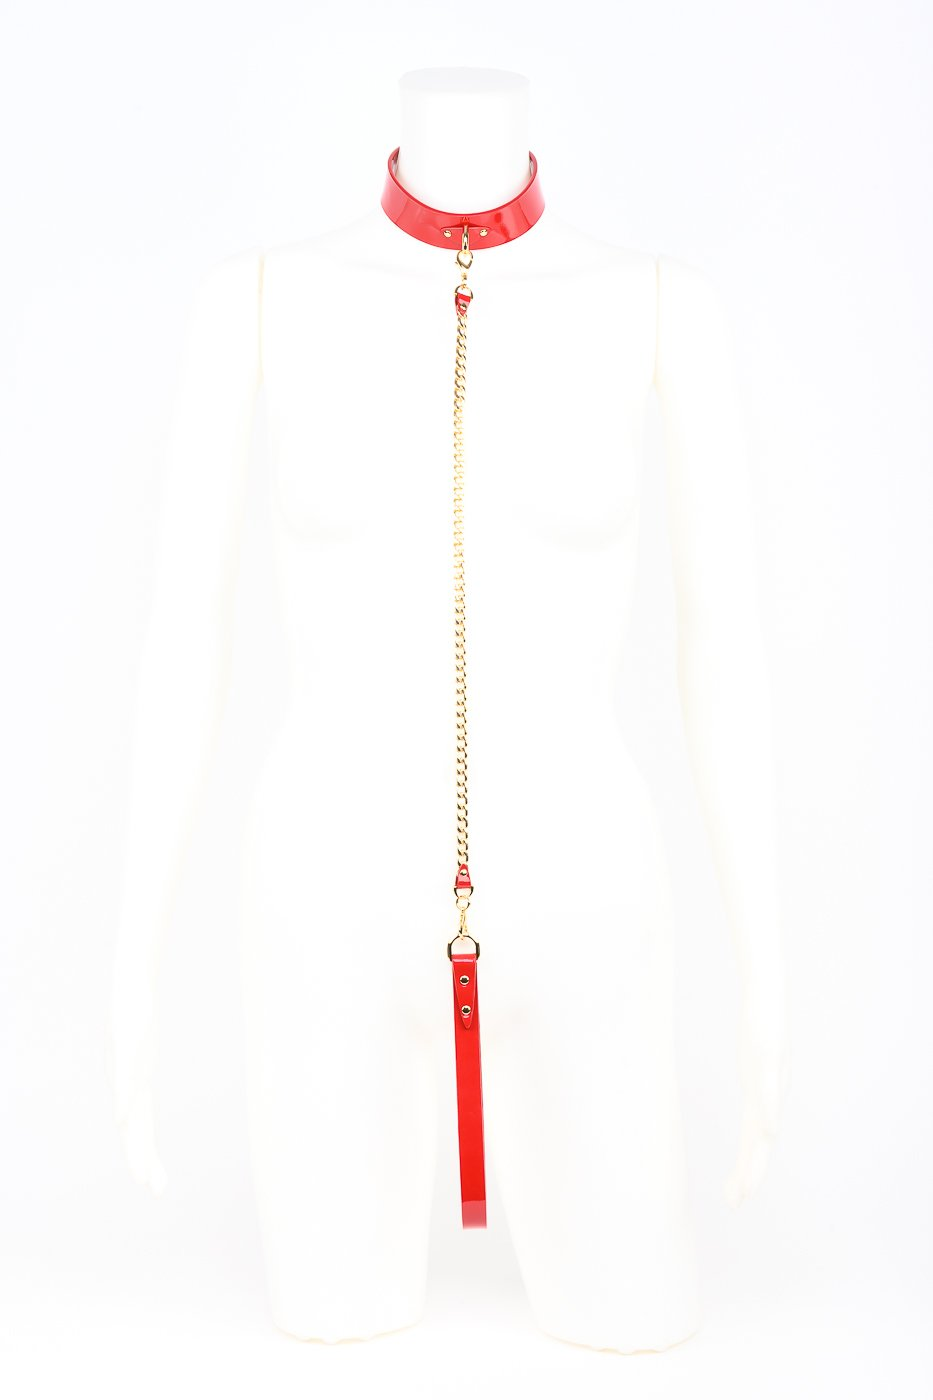 Roja Chain Lead in Red Patent Leather By Fraulein Kink